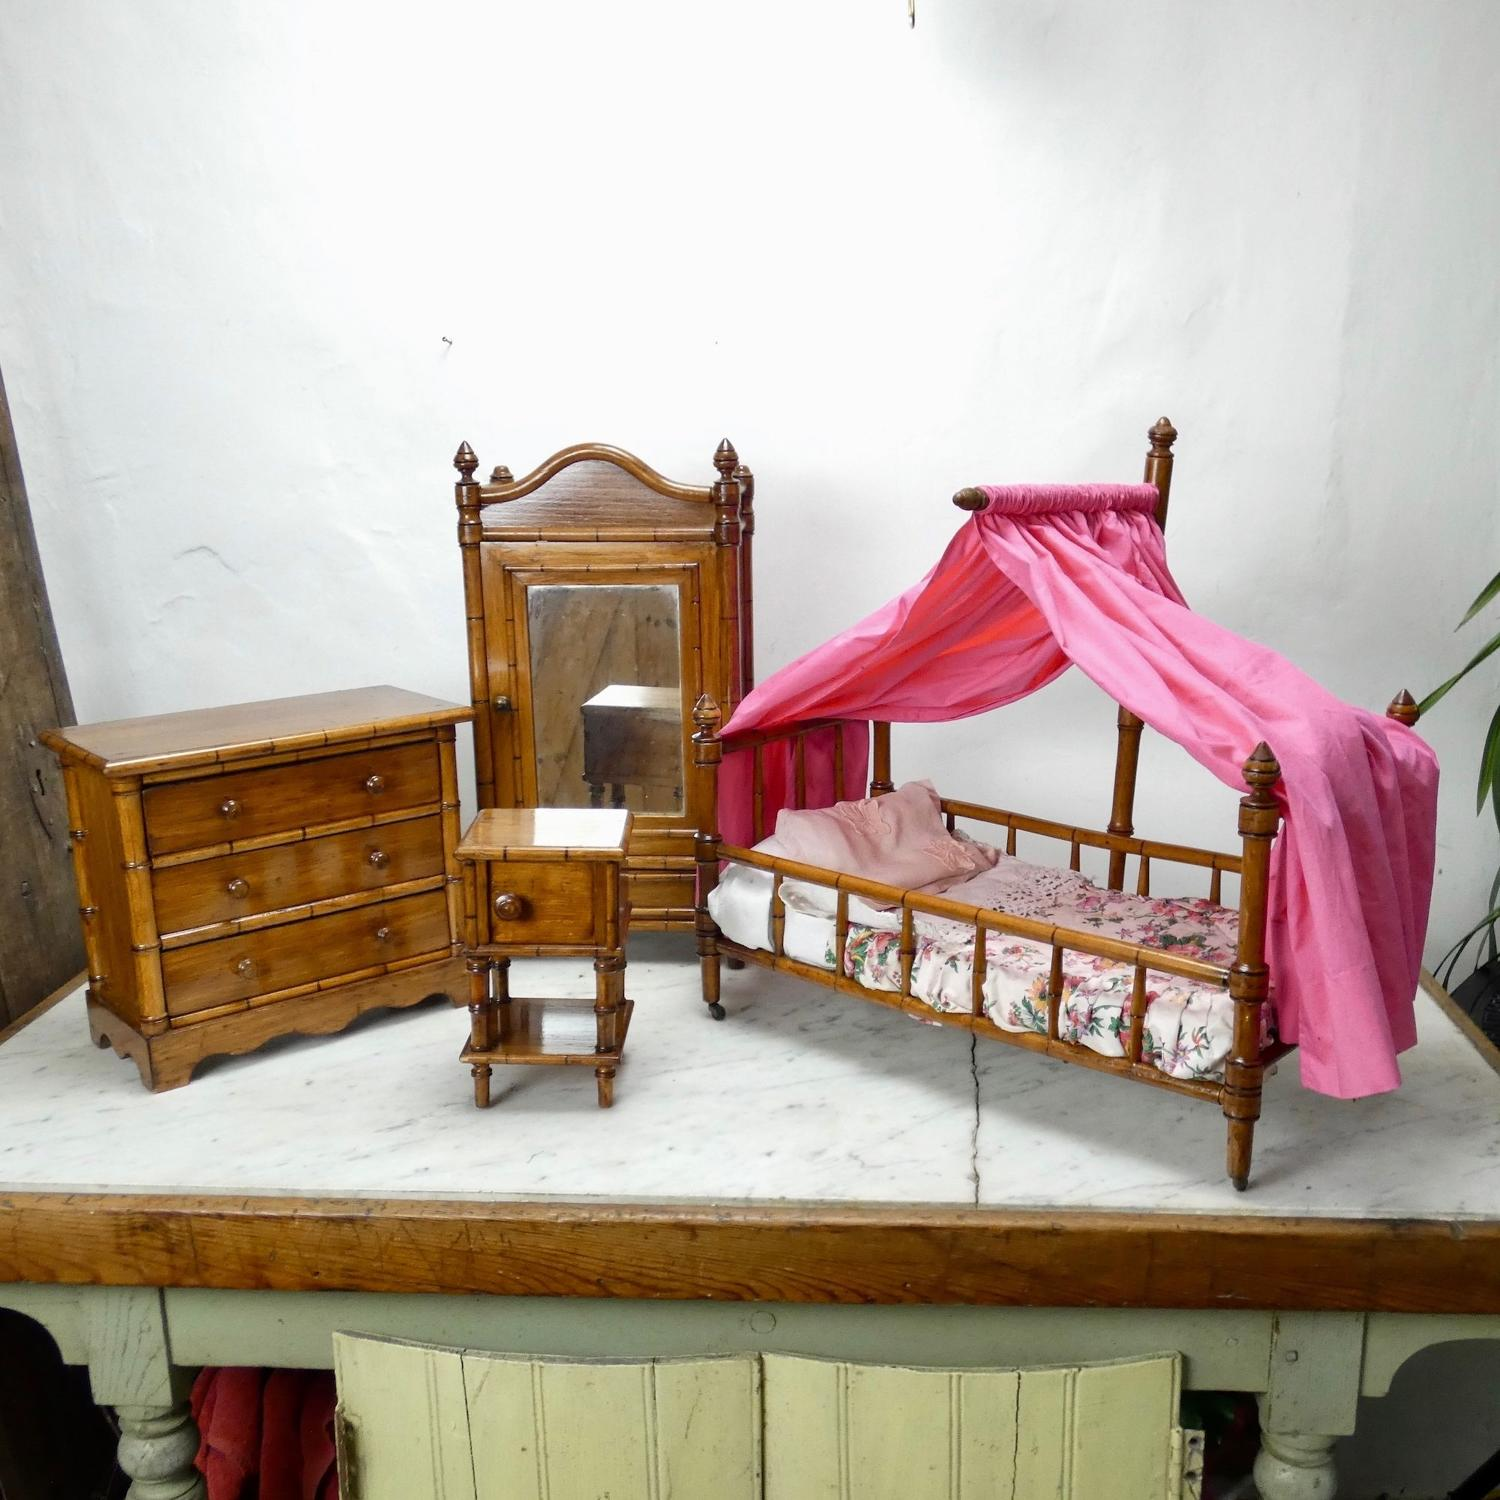 Doll's bedroom furniture